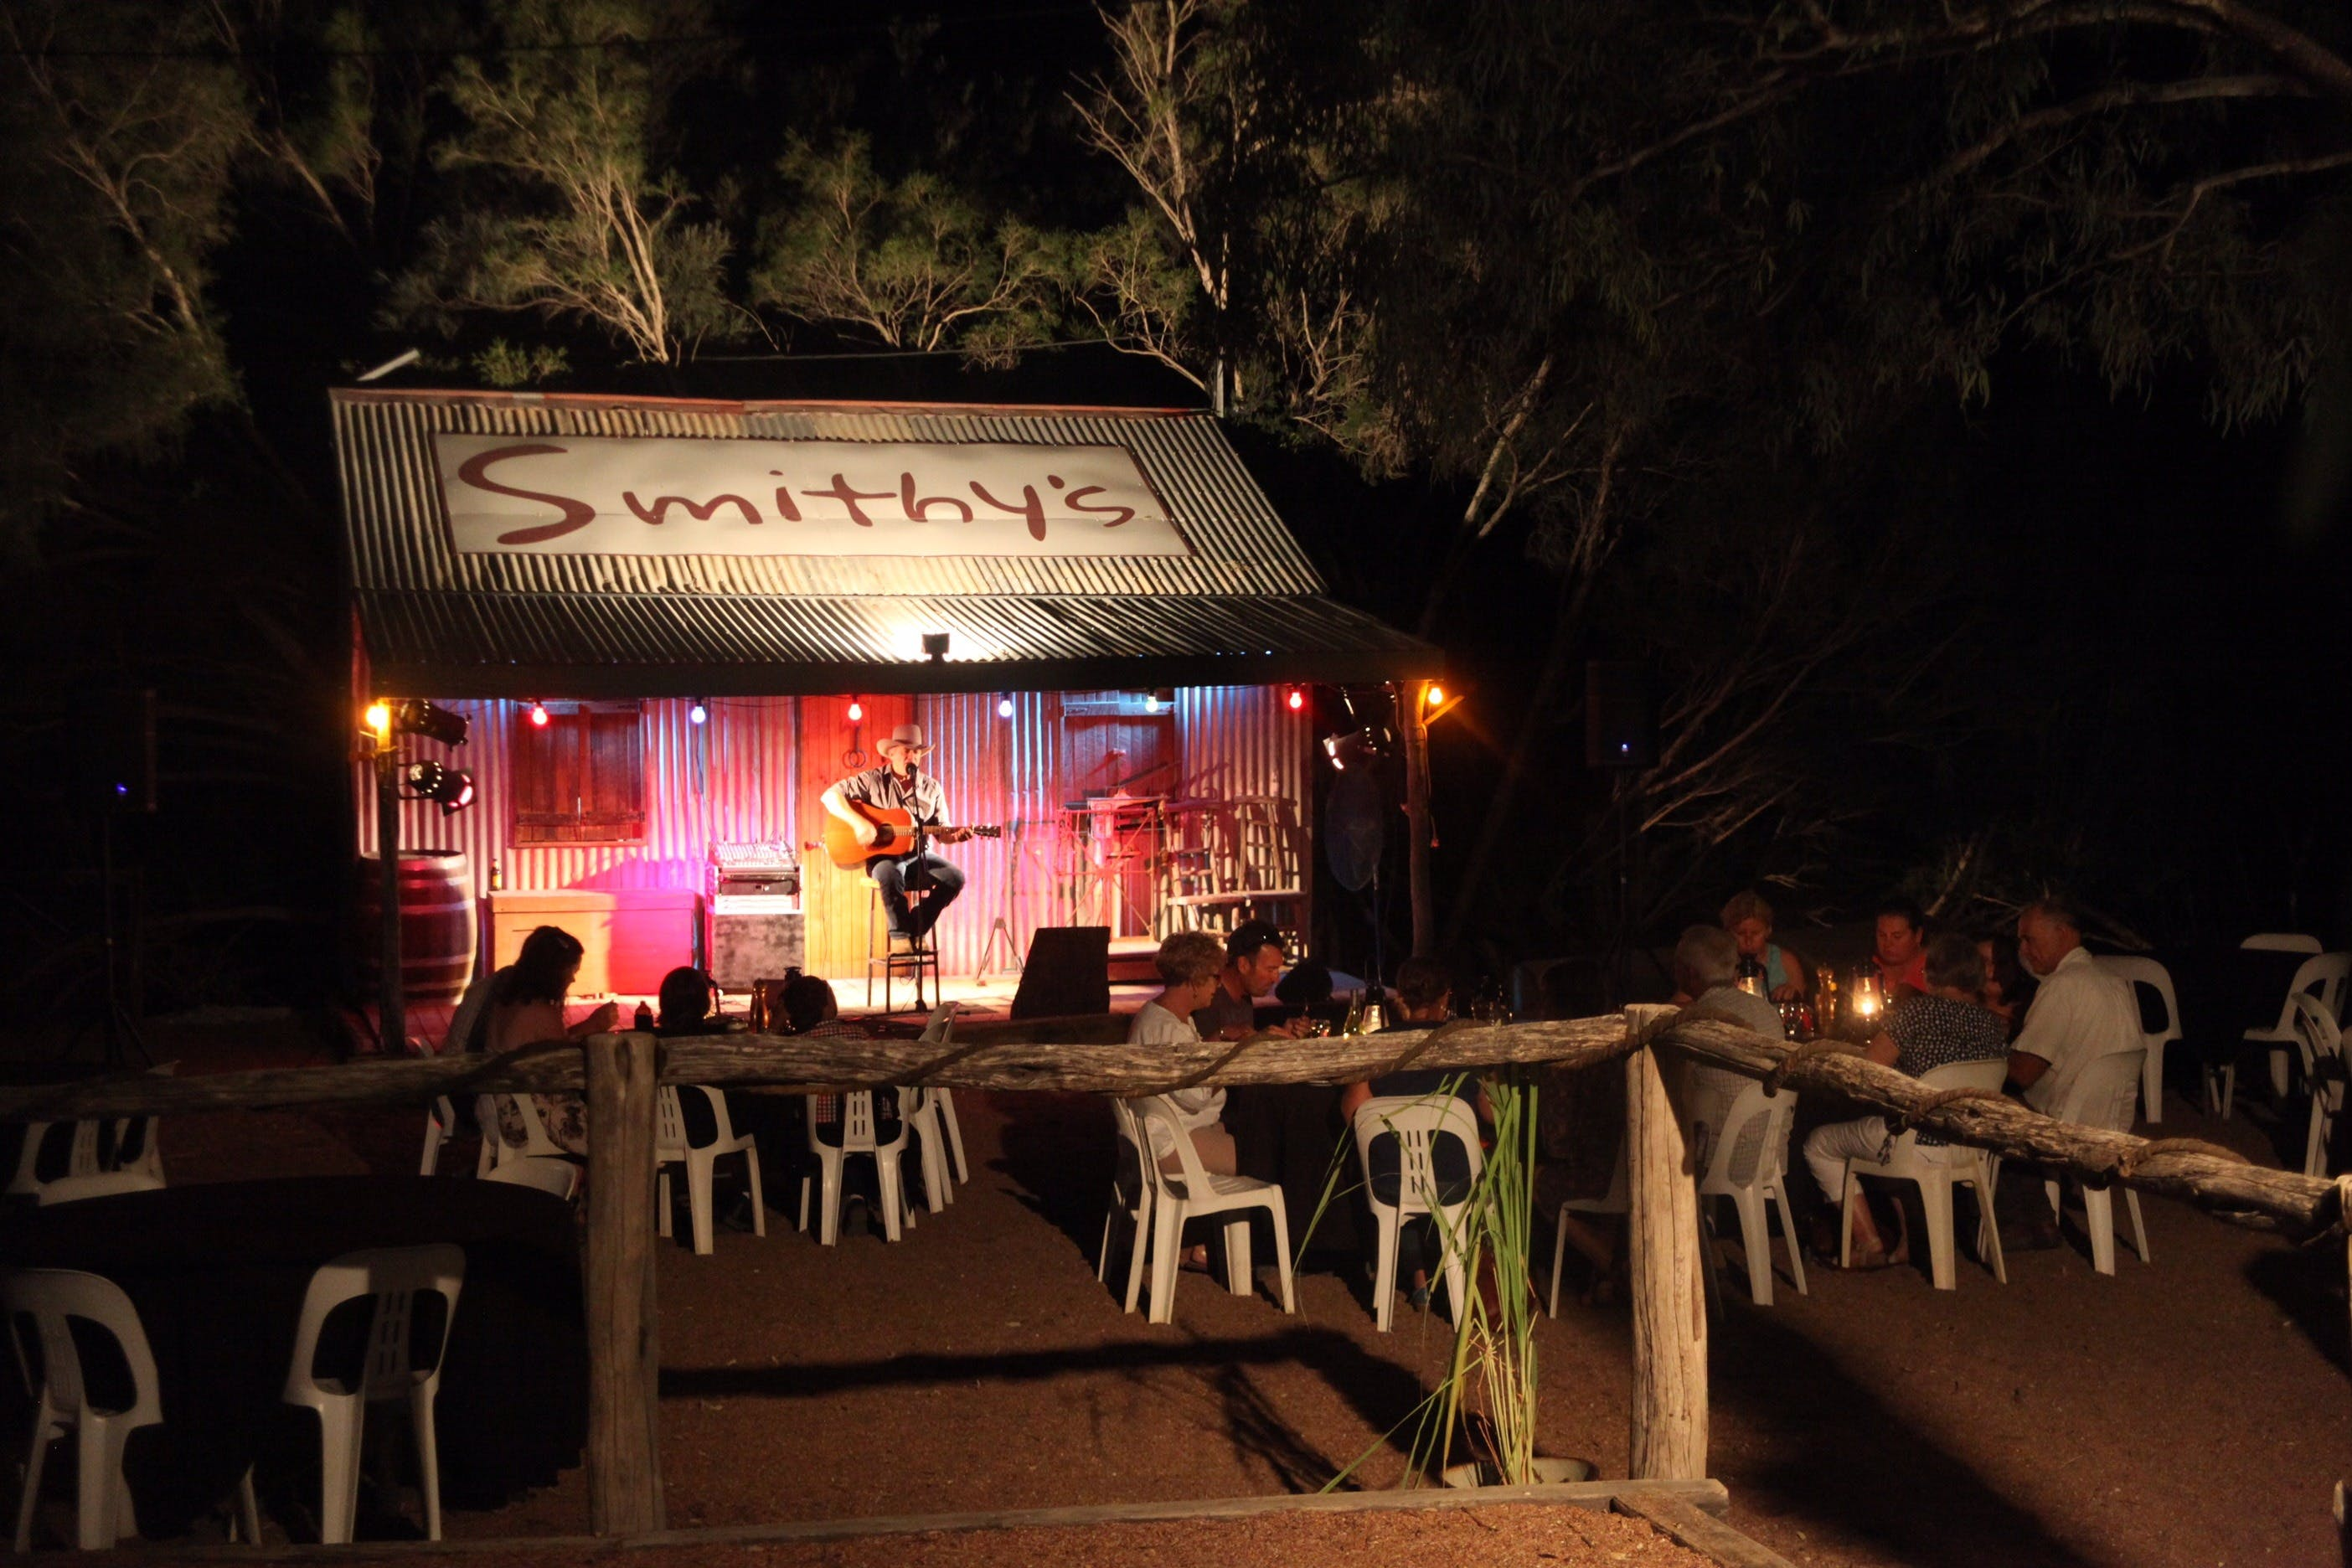 Smithy's Outback Dinner and Show - Tourism Brisbane